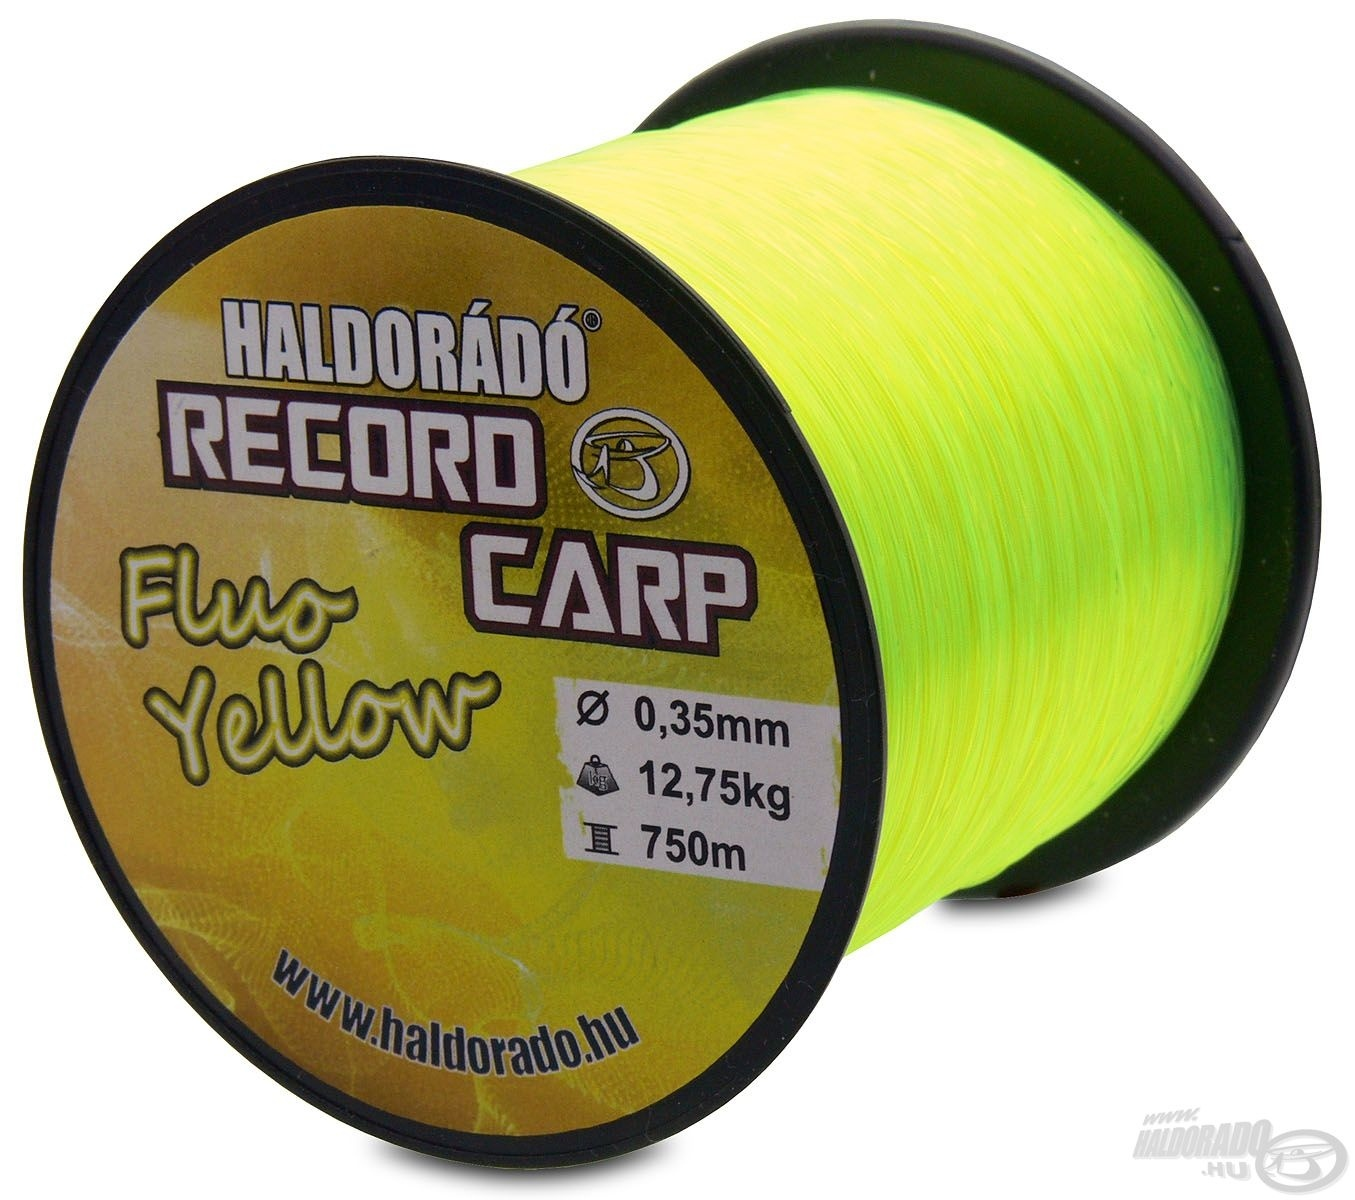 HALDOR�D� Record Carp Fluo Yellow 1990Ft